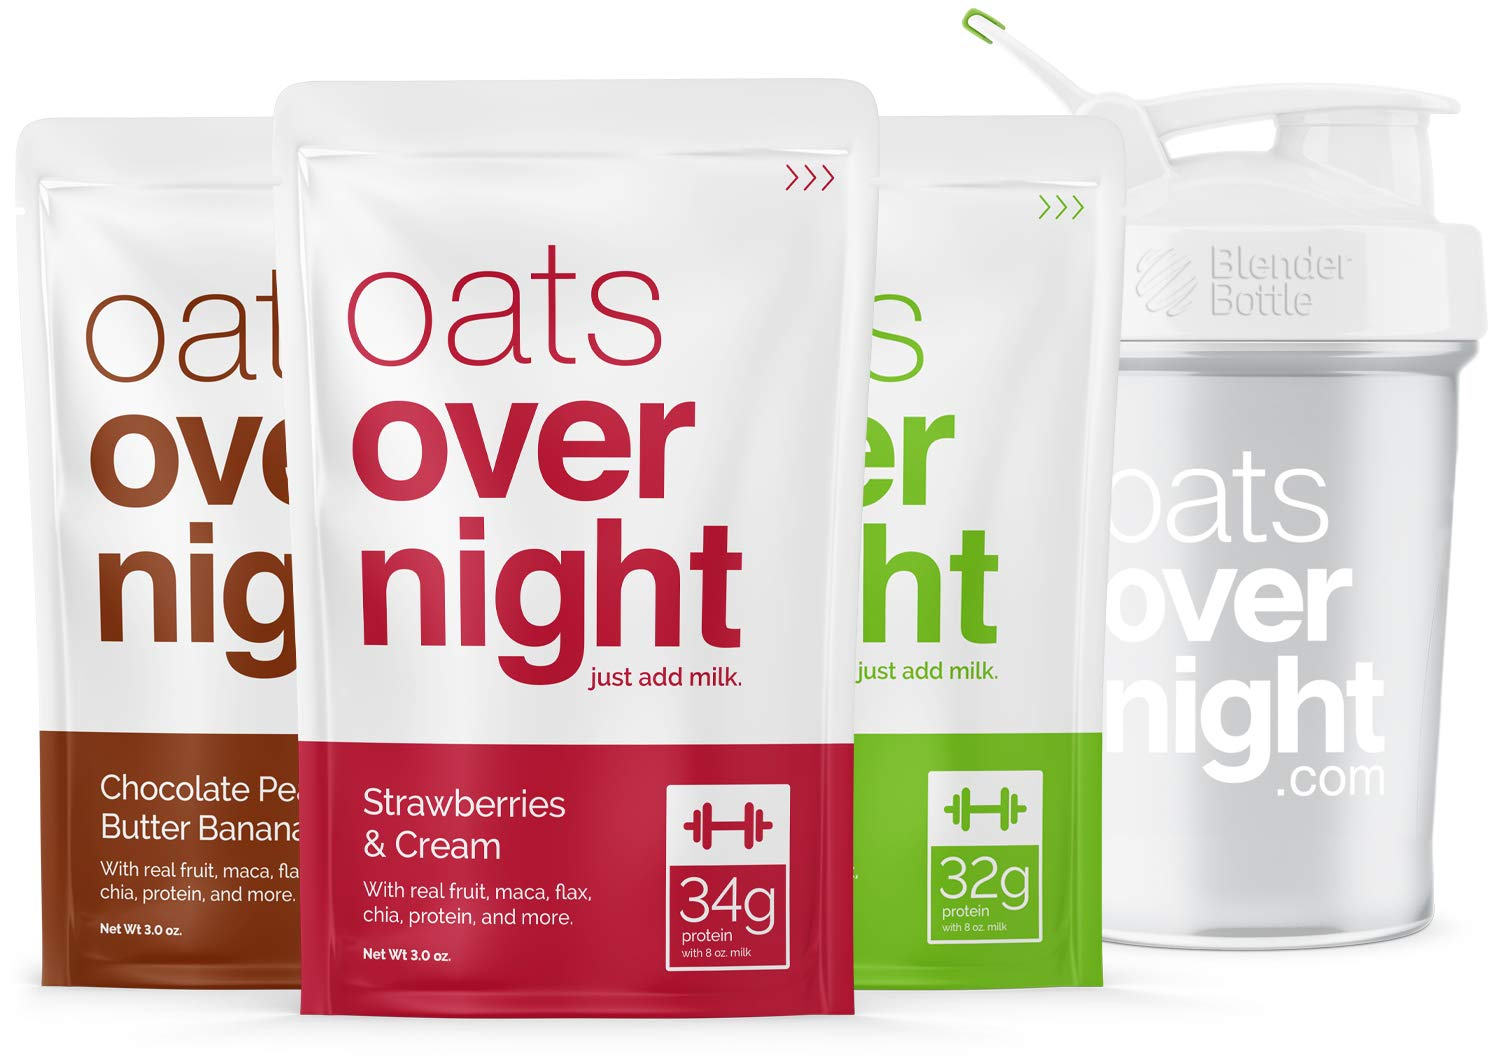 Oats Overnight - Premium High-Protein, Low-Sugar, Gluten-Free (3oz per pack) (12 Pack Variety with BlenderBottle) by Oats Overnight